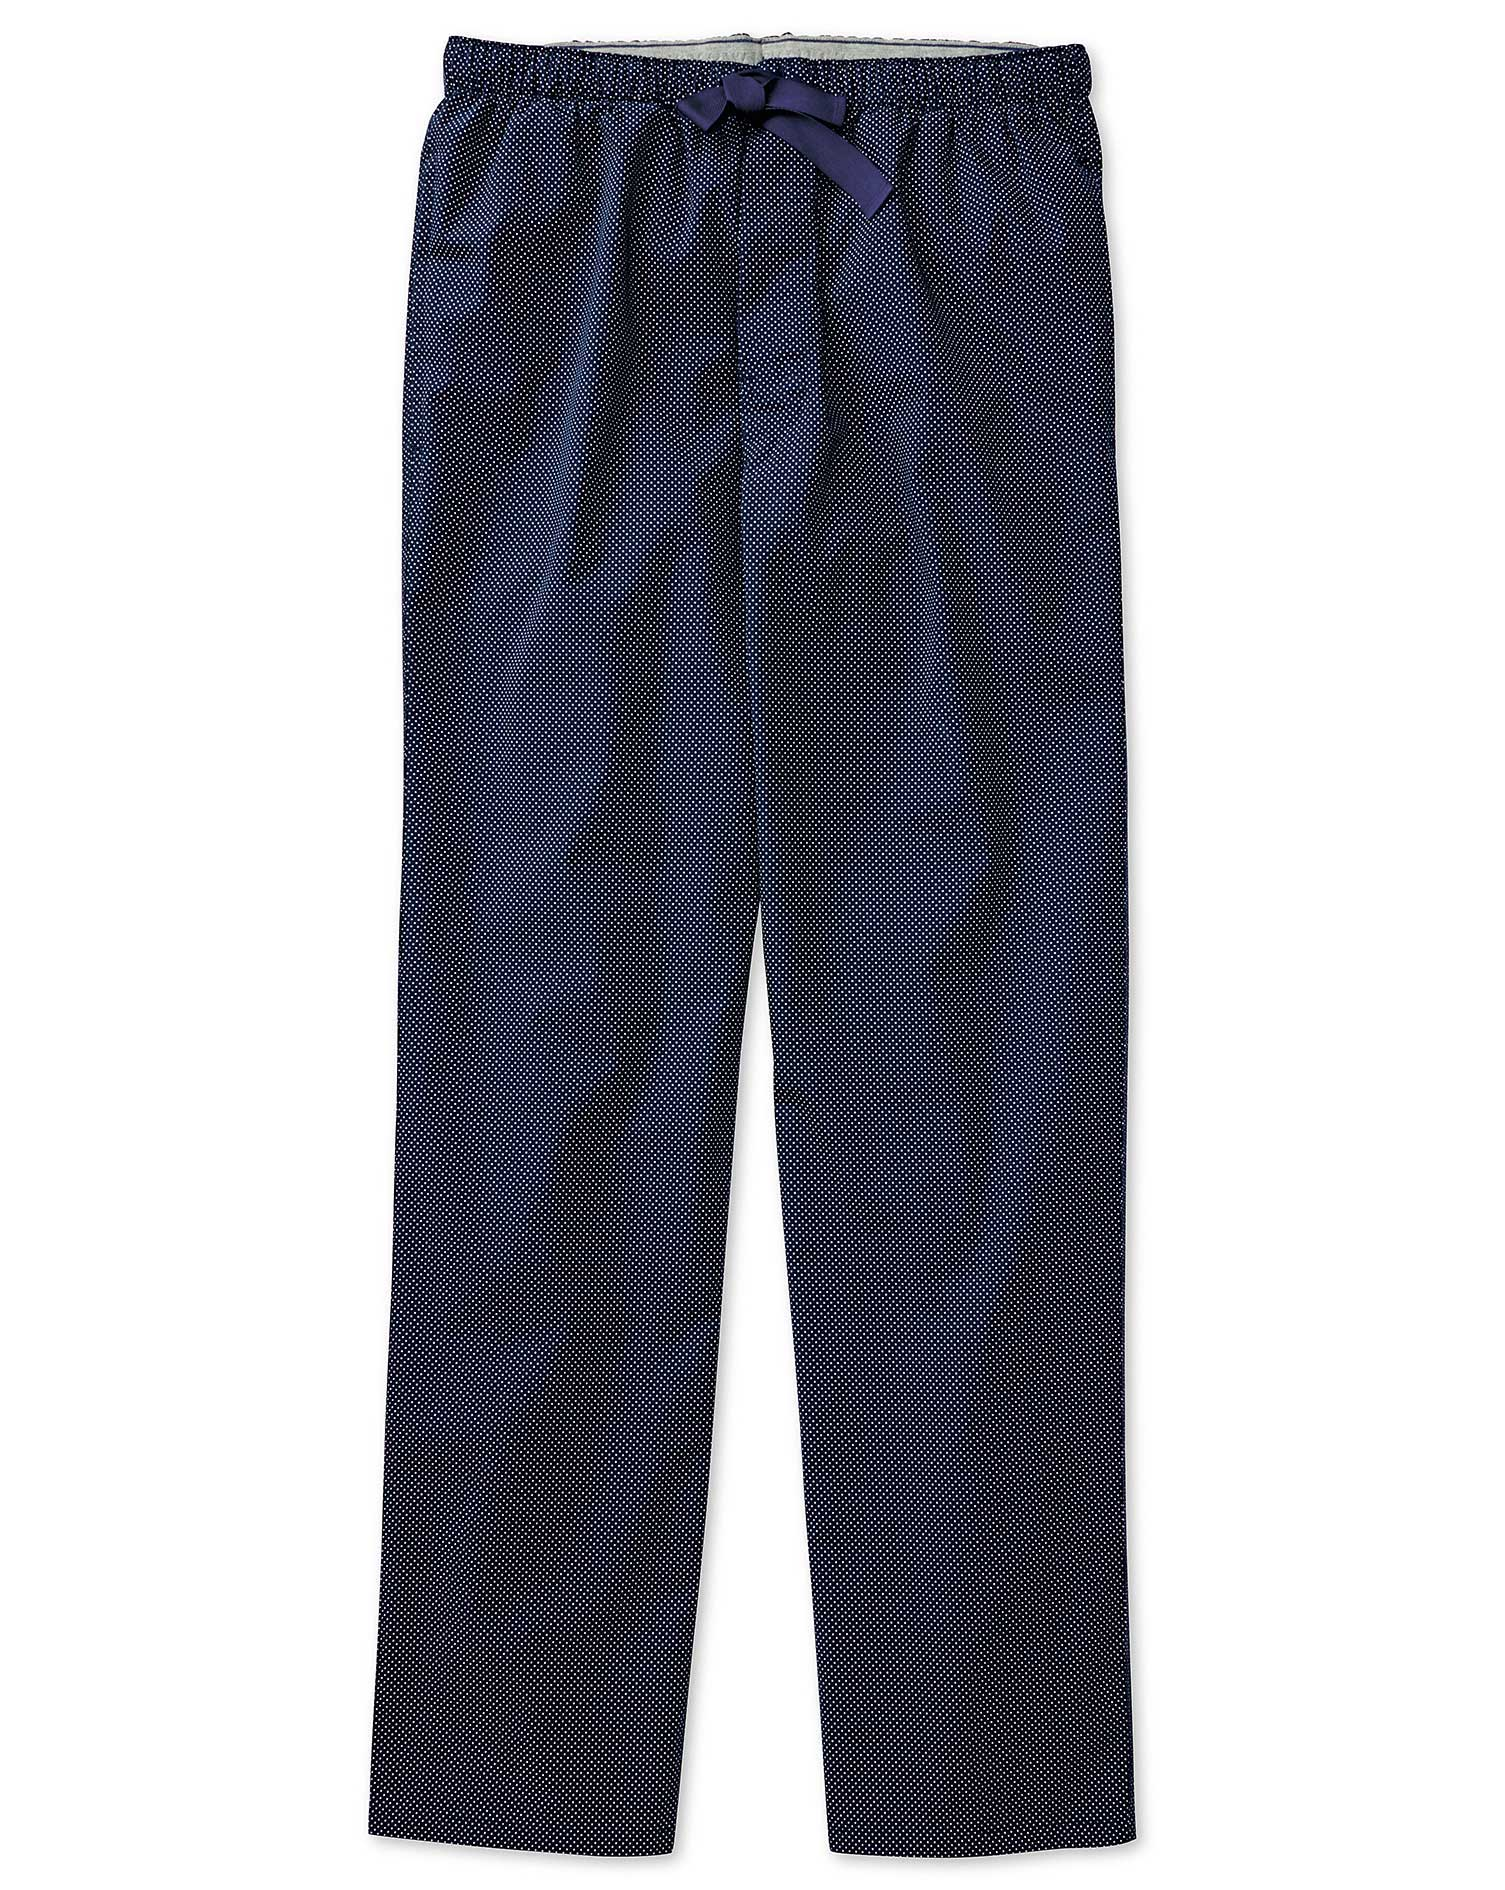 Navy Dot Cotton Pyjama Trousers Size XXL by Charles Tyrwhitt